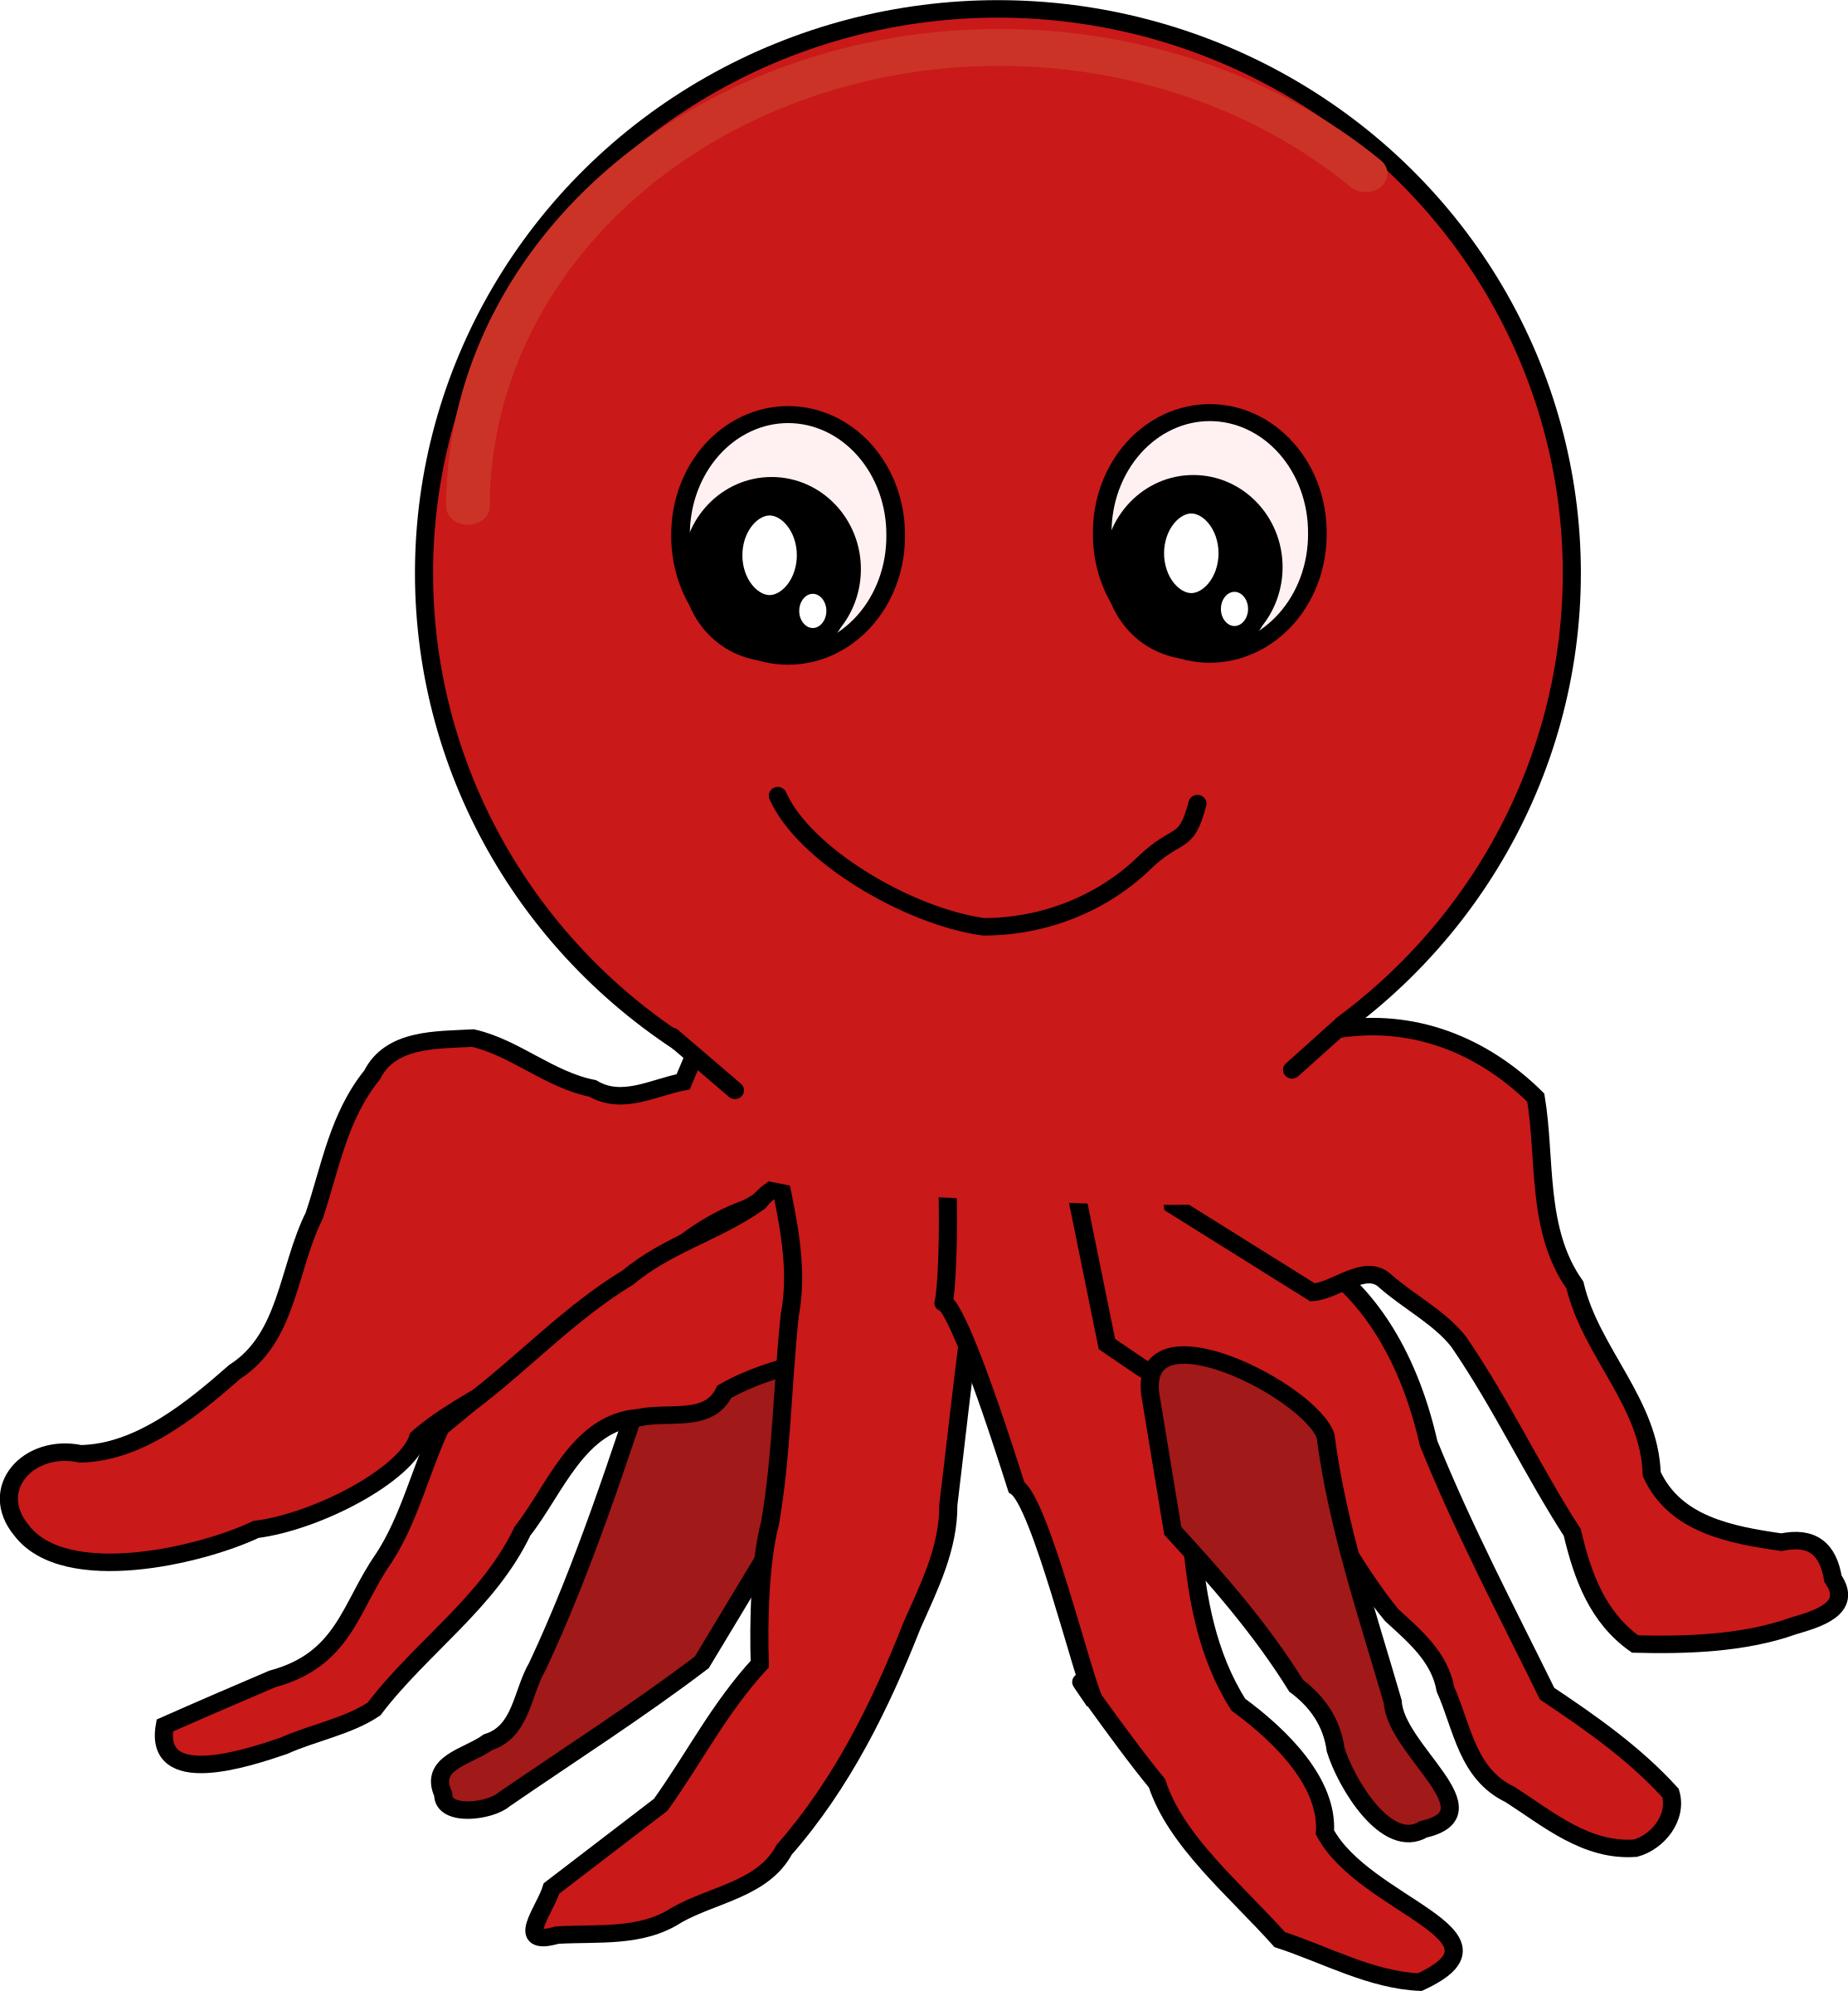 Clipart red cartoon octopus for Octopus in cartoon